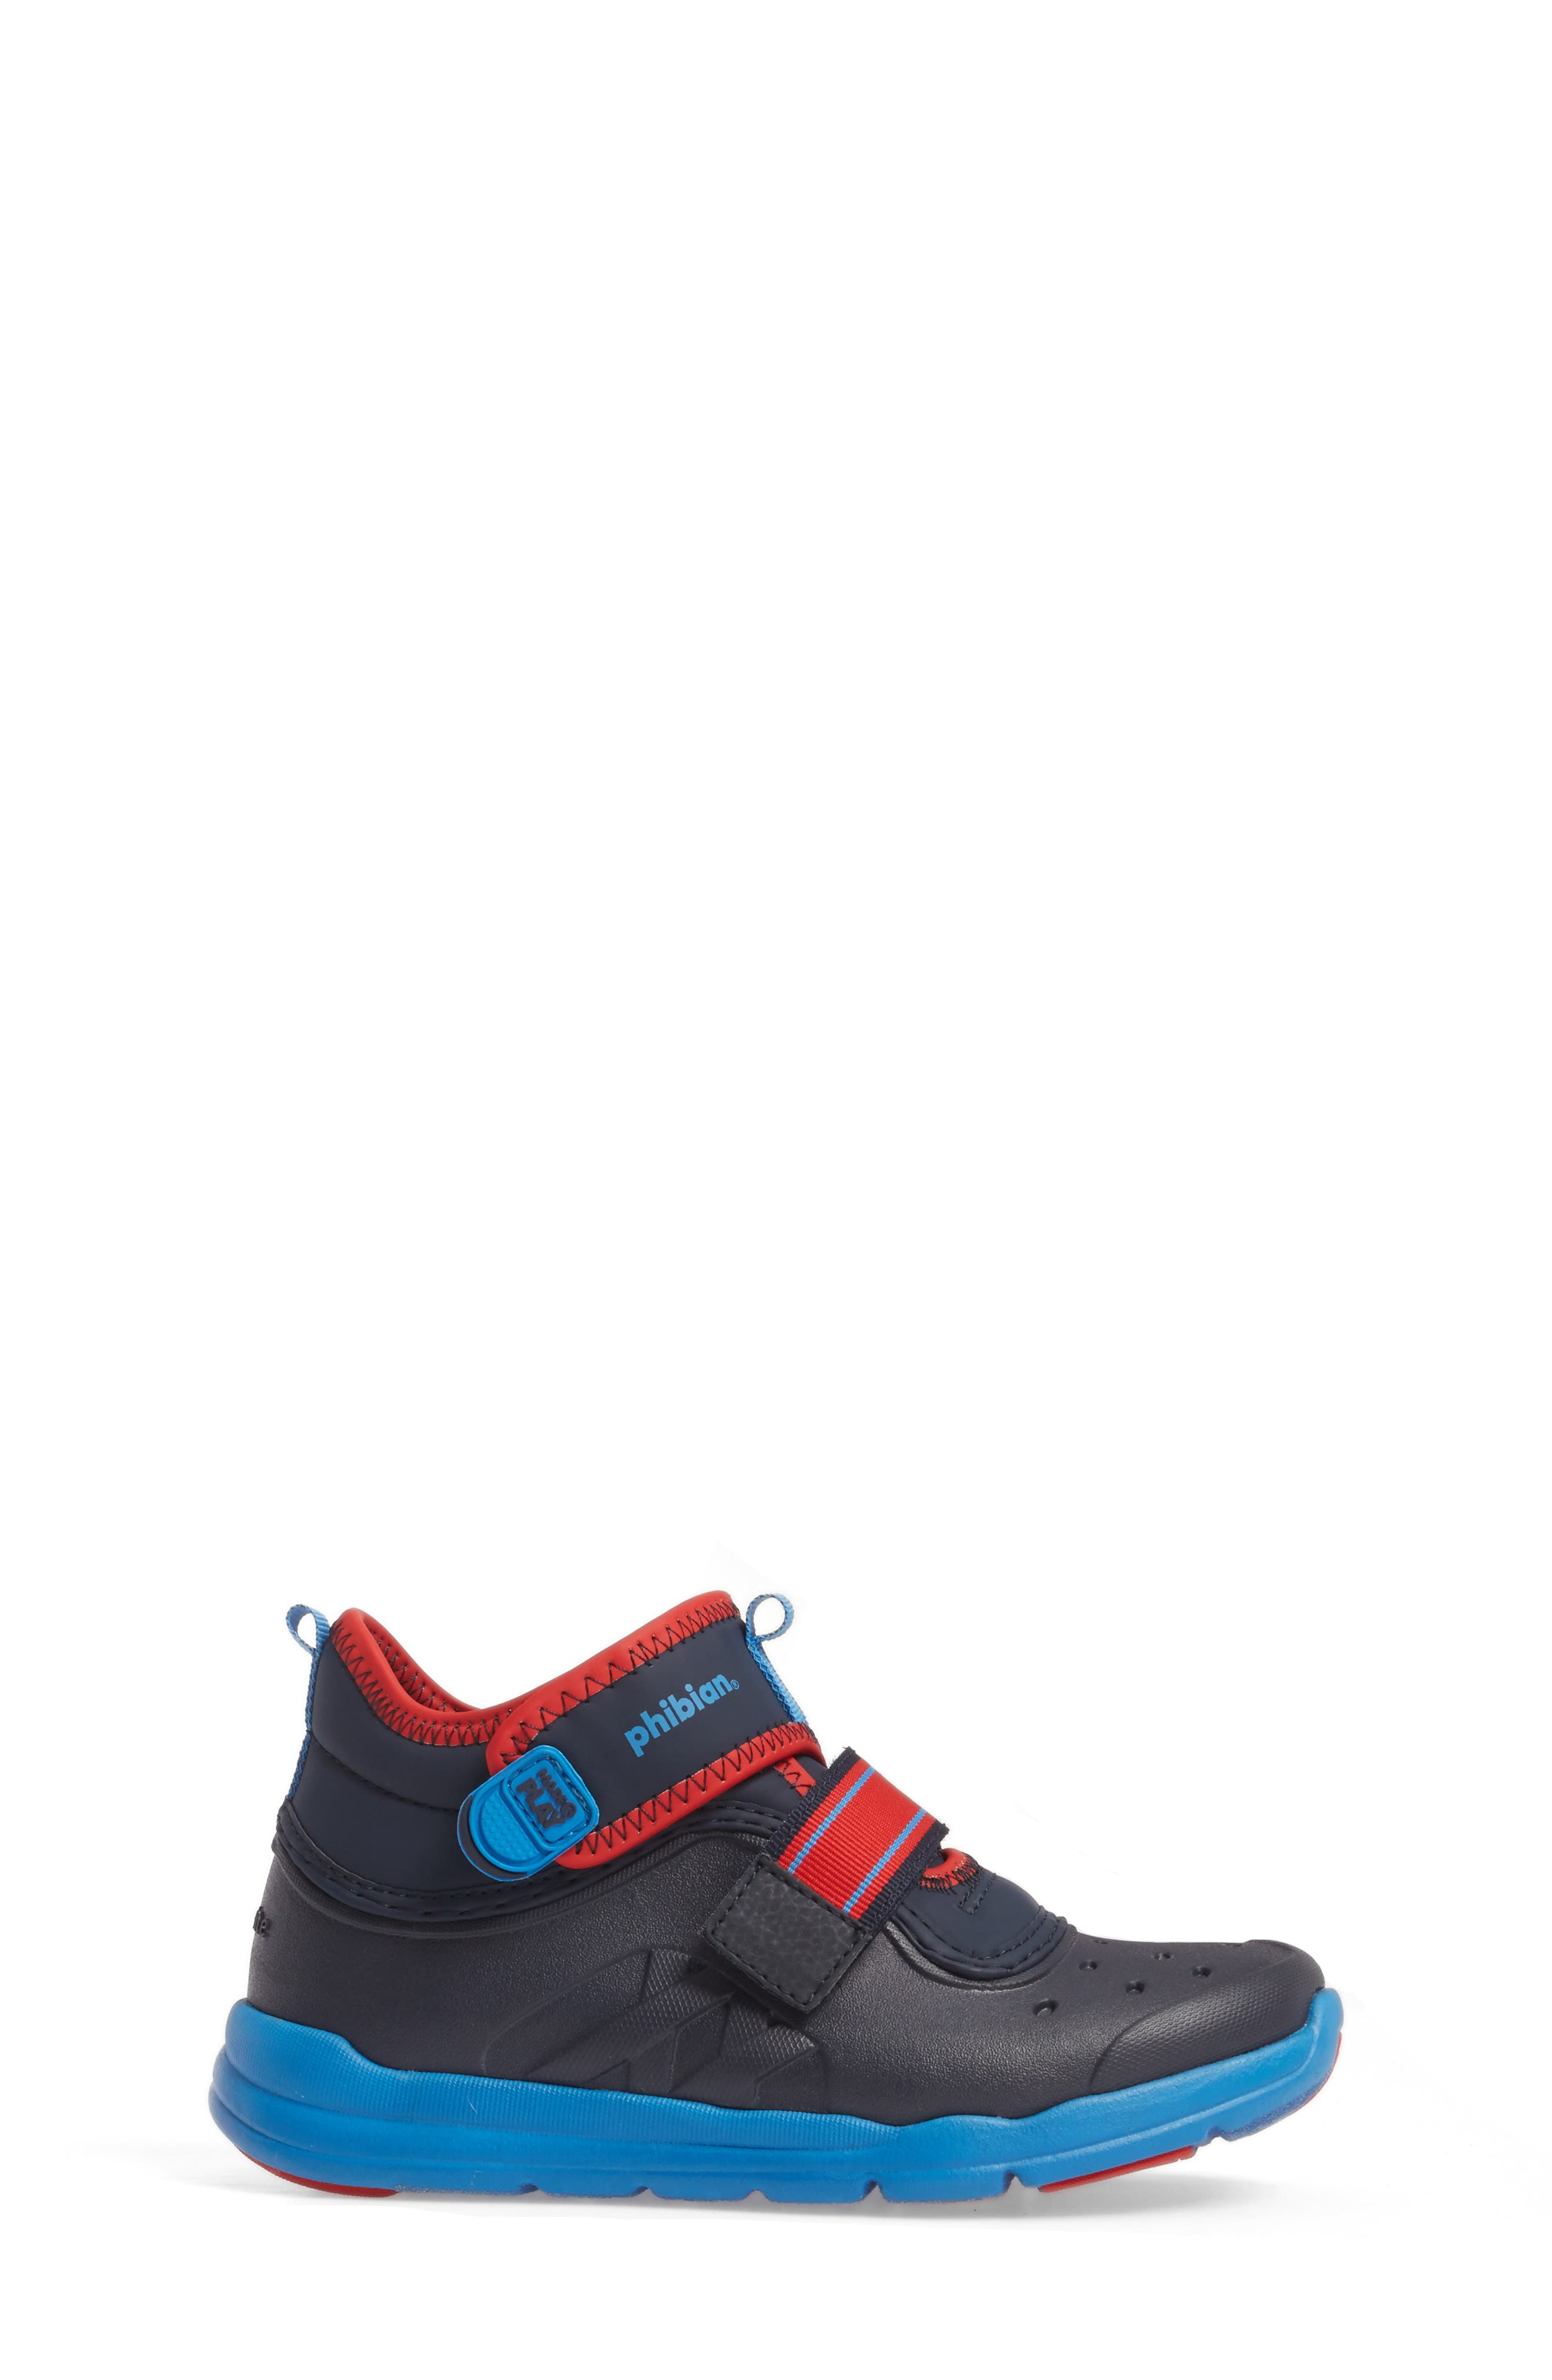 Made2Play<sup>®</sup> Phibian Mid Top Sneaker,                             Alternate thumbnail 6, color,